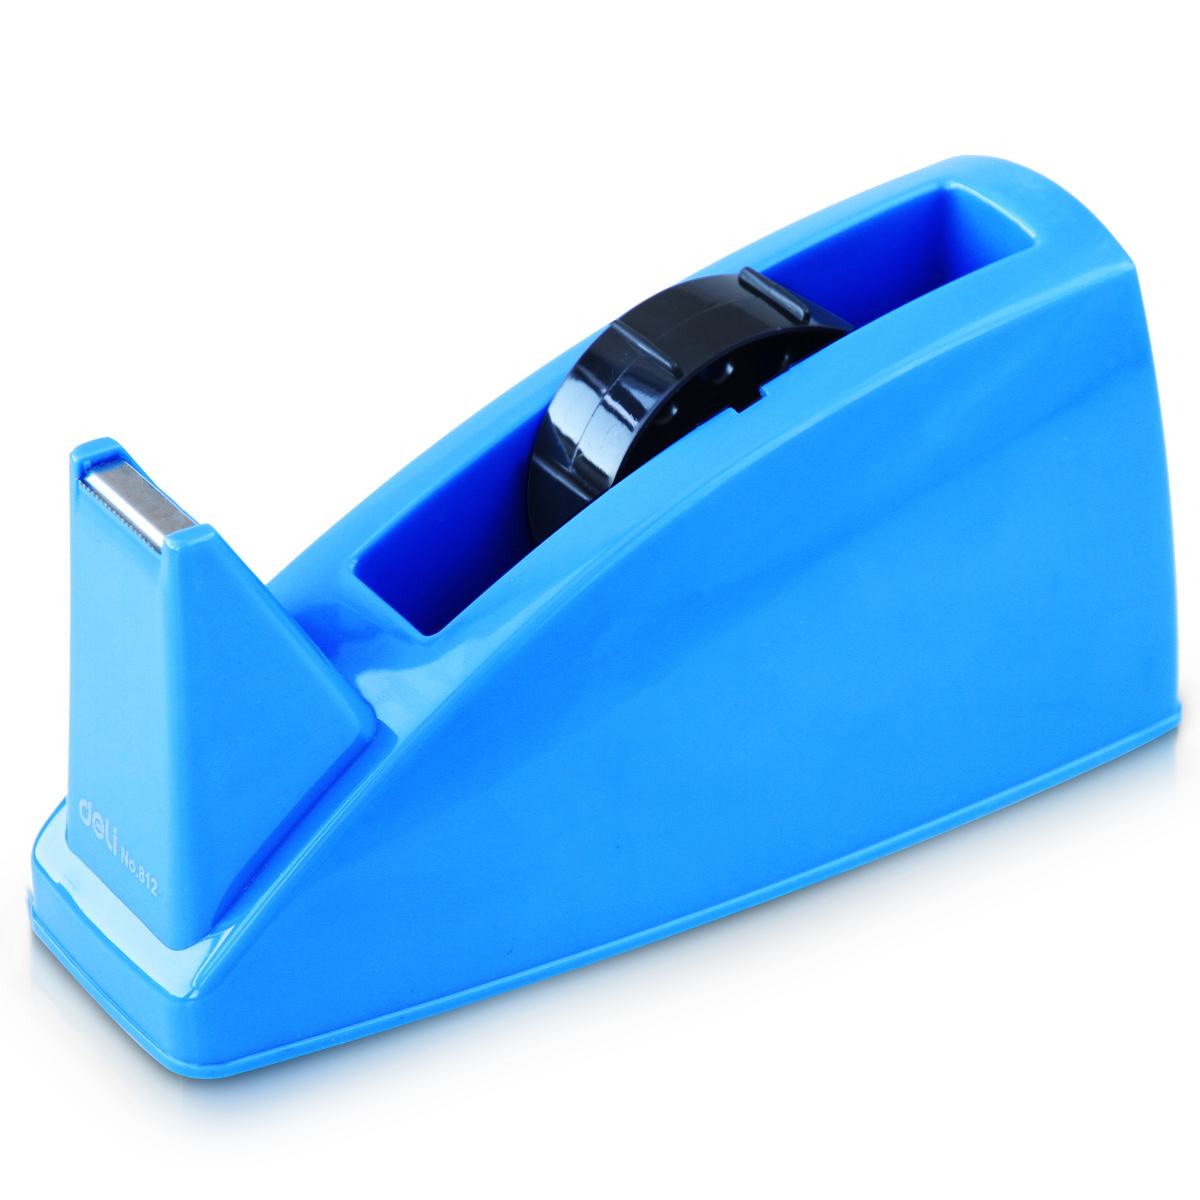 Deli 812 tape dispenser tape dispenser is suitable for large width 24mm tape sealing tape cutter device